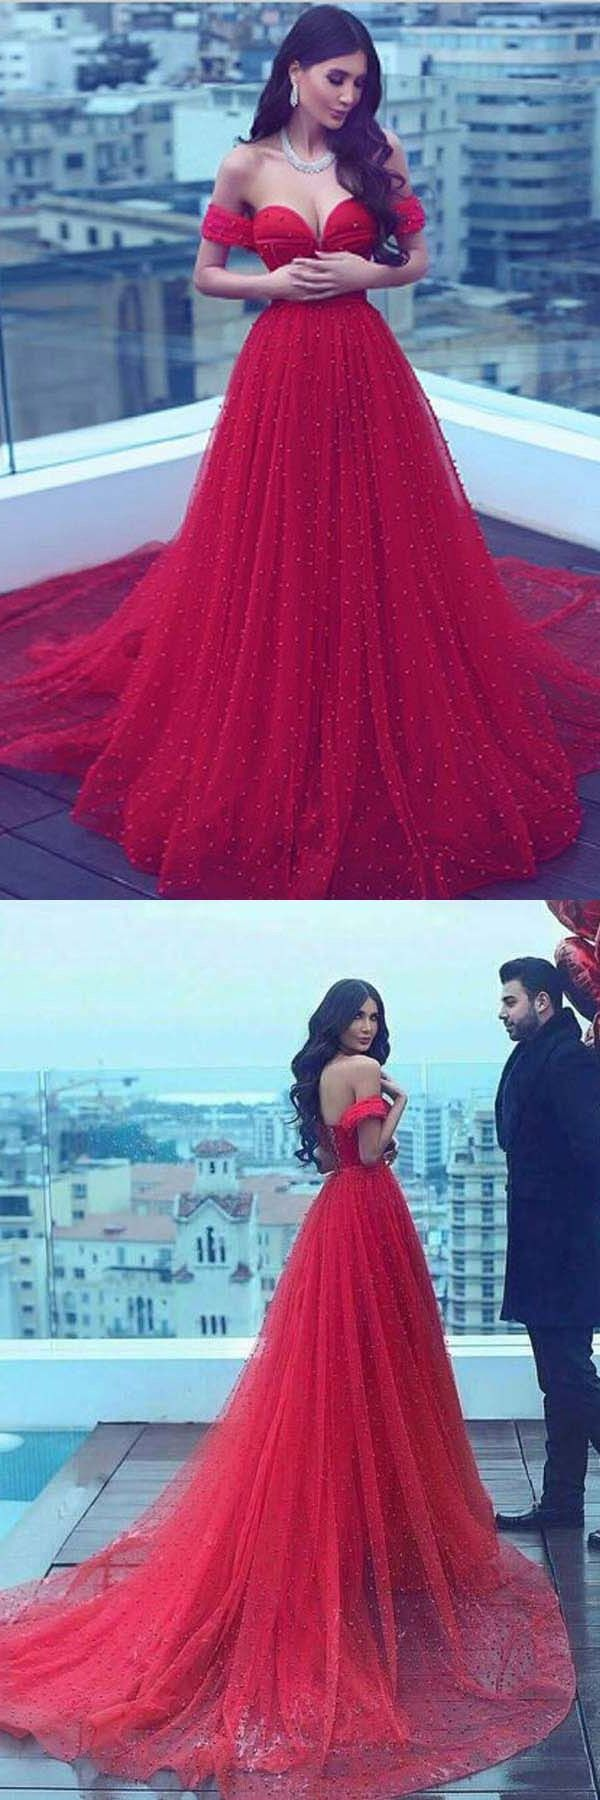 Customized comely prom dresses aline aline offtheshoulder court